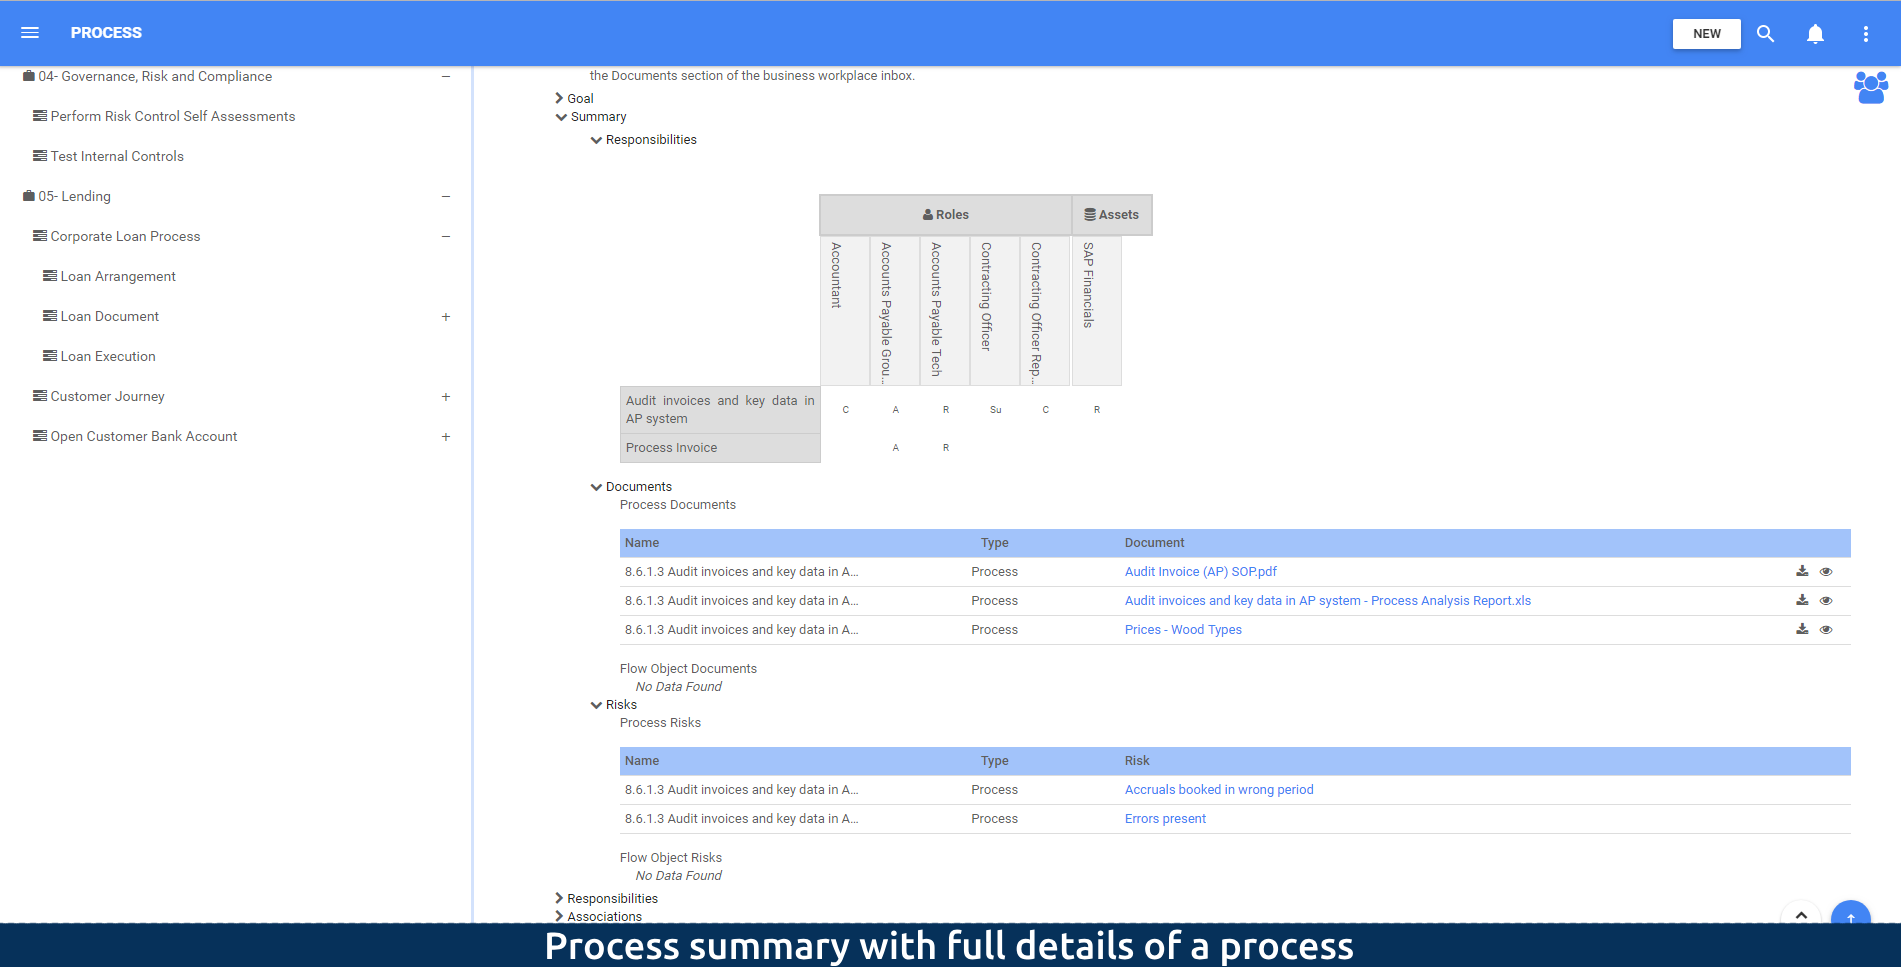 Process summary with full details of a process